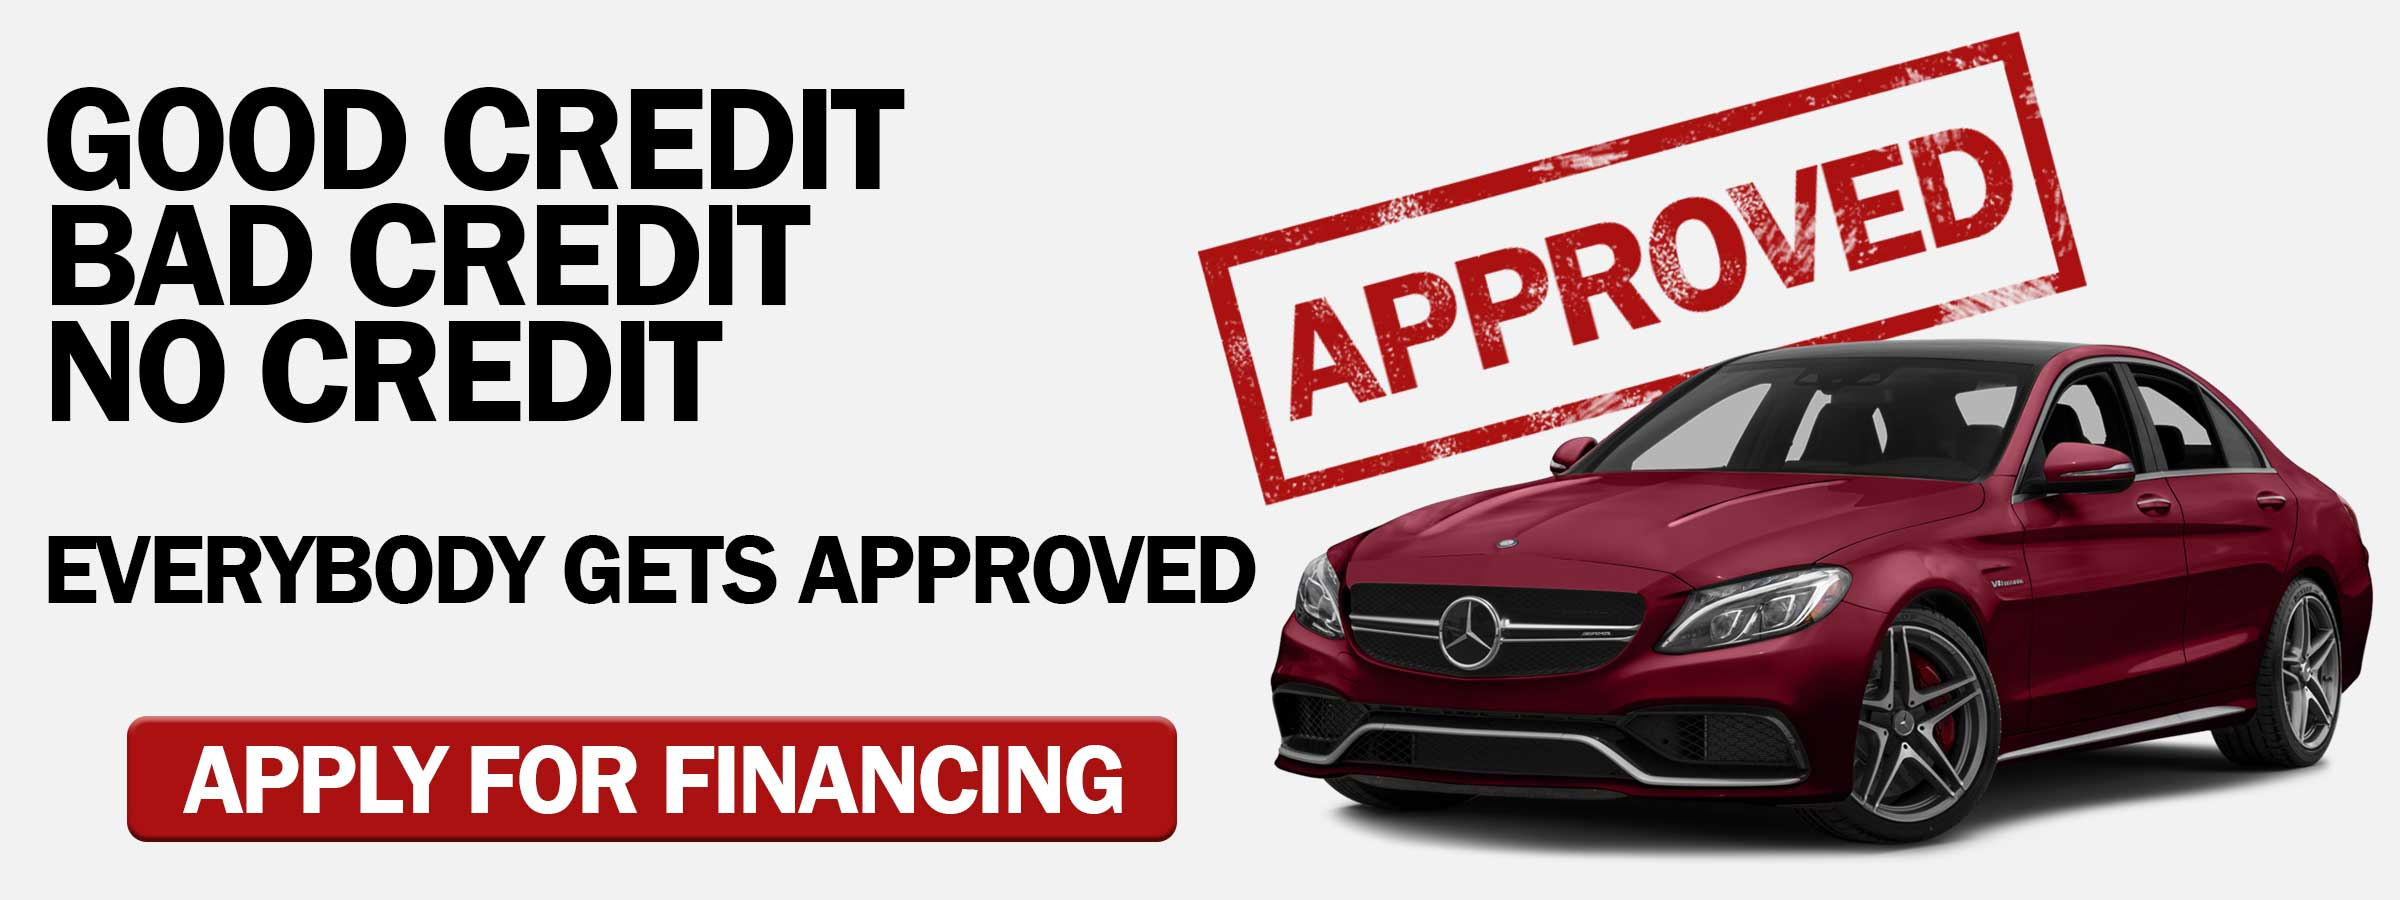 Used Car Dealer in Burleson, TX, Apply for Financing and Get approved.